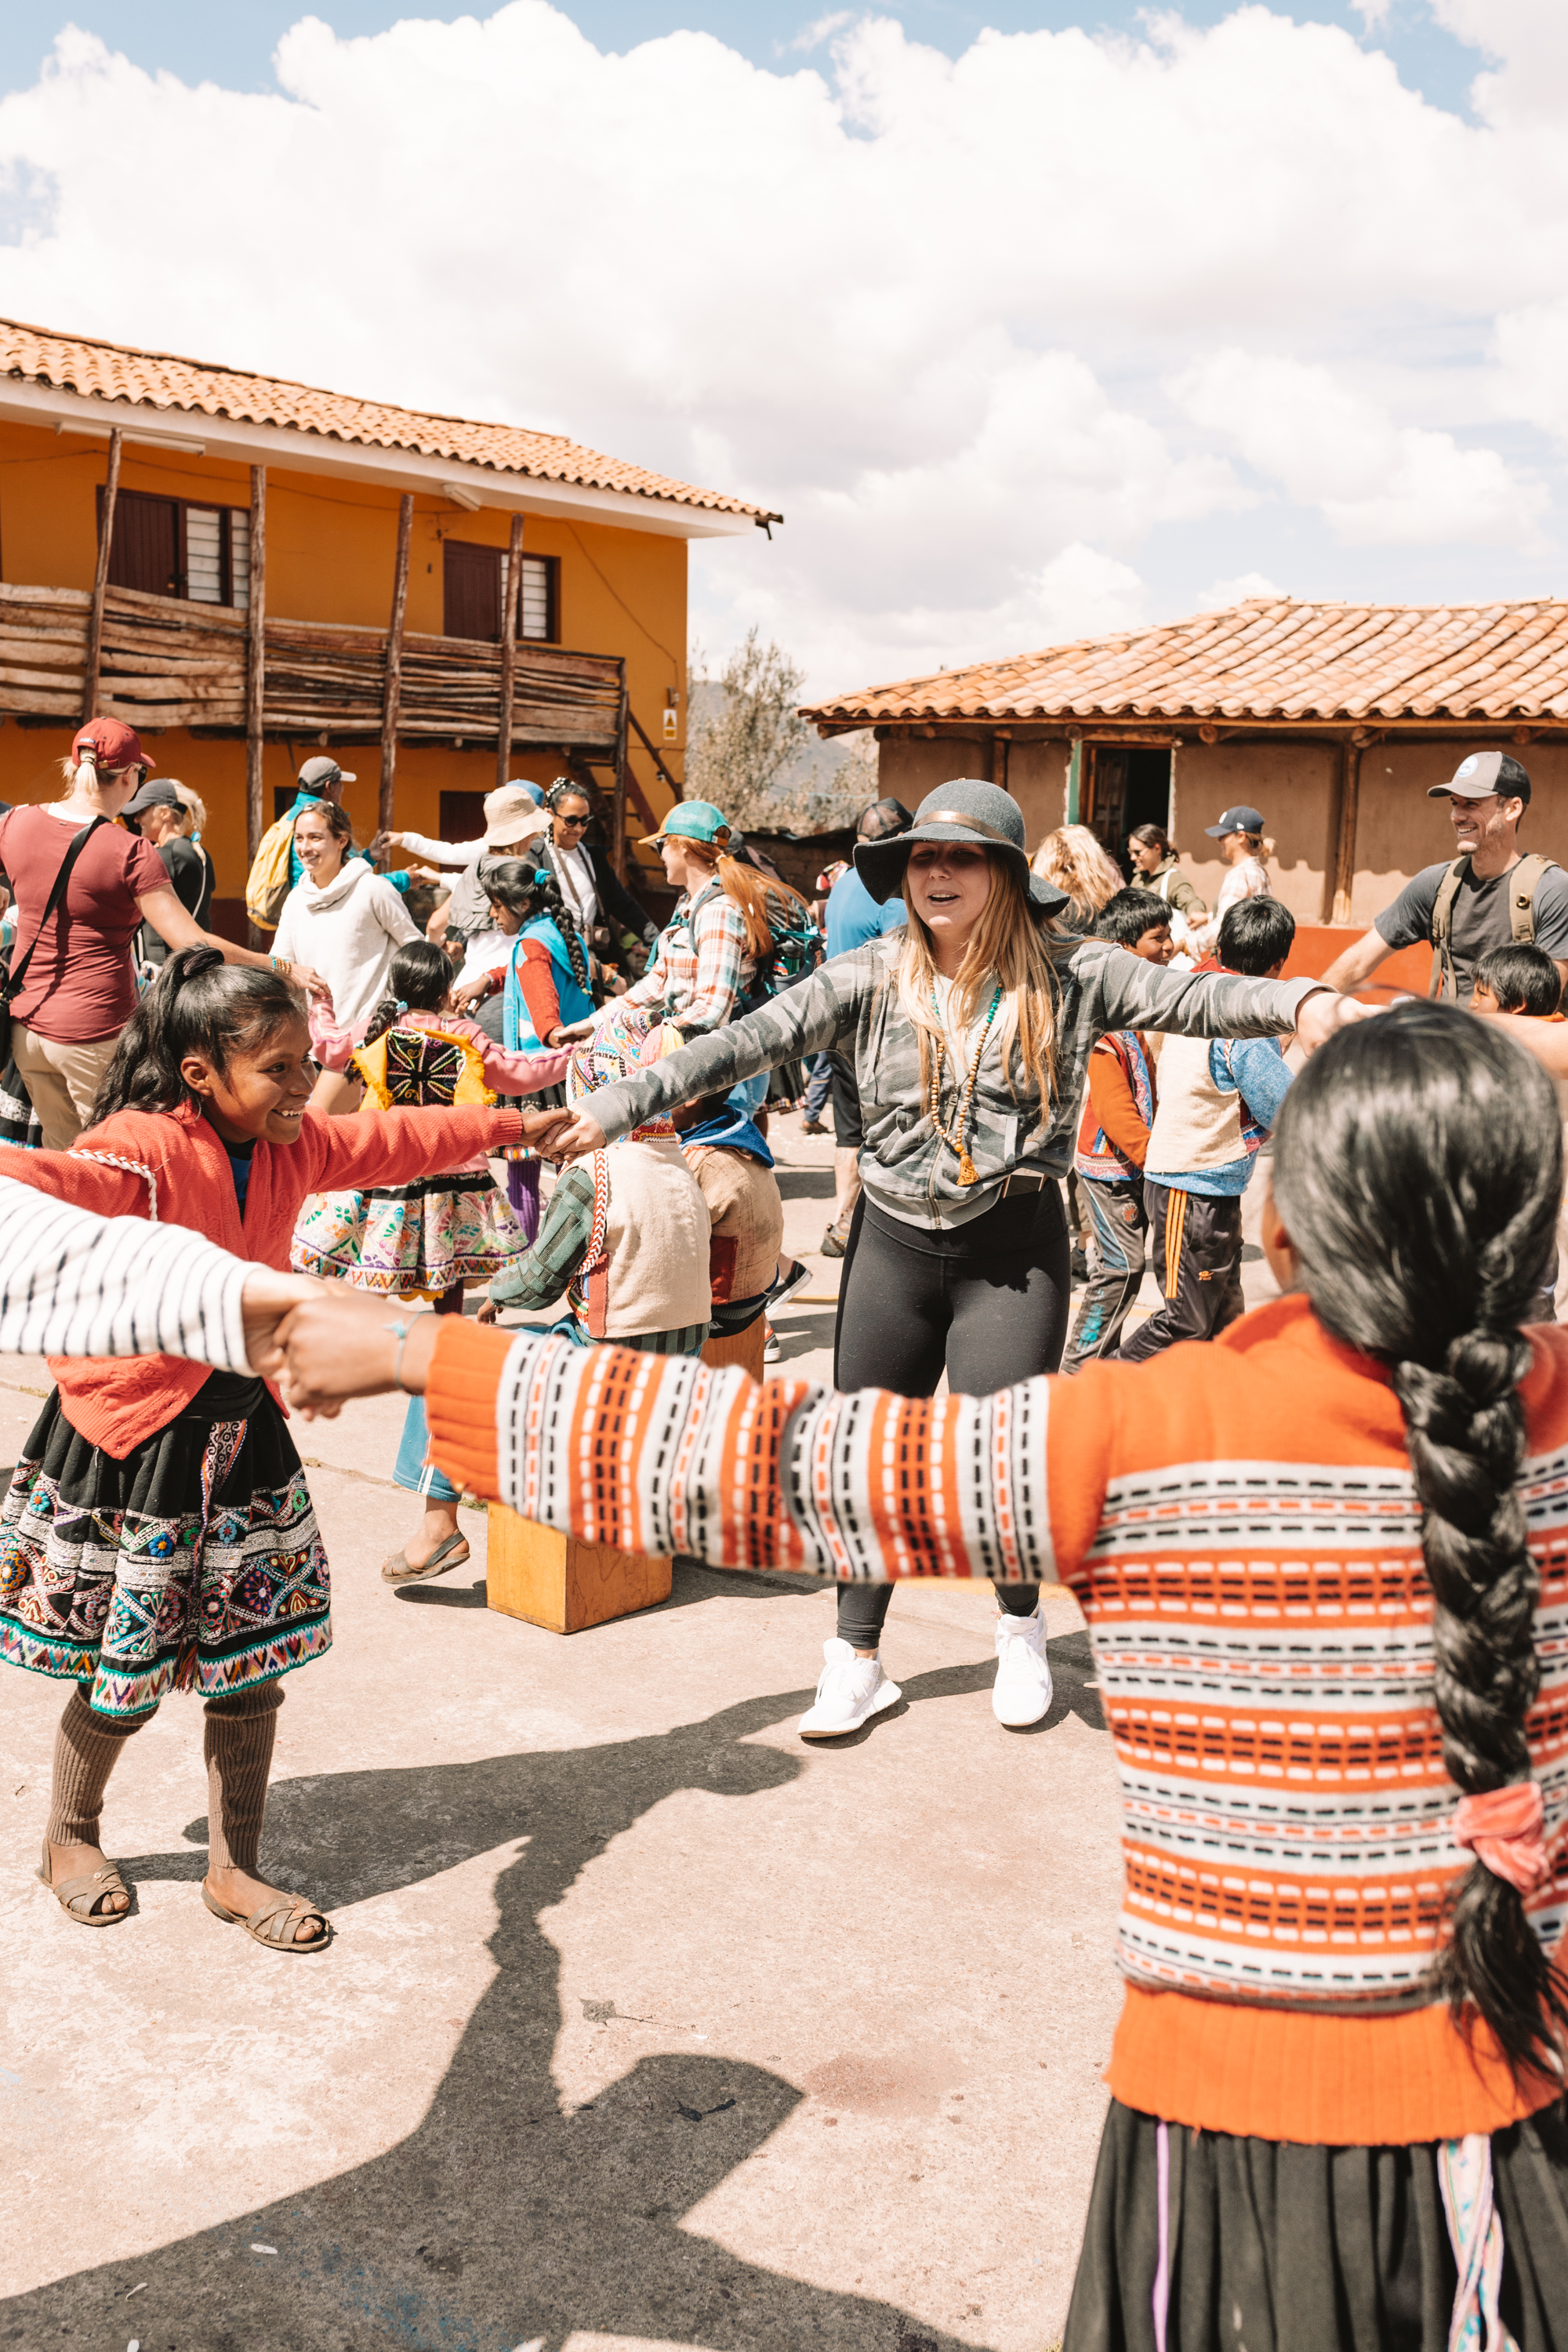 dancing together with the people of peru #thelovedesignedlife #peru #travel